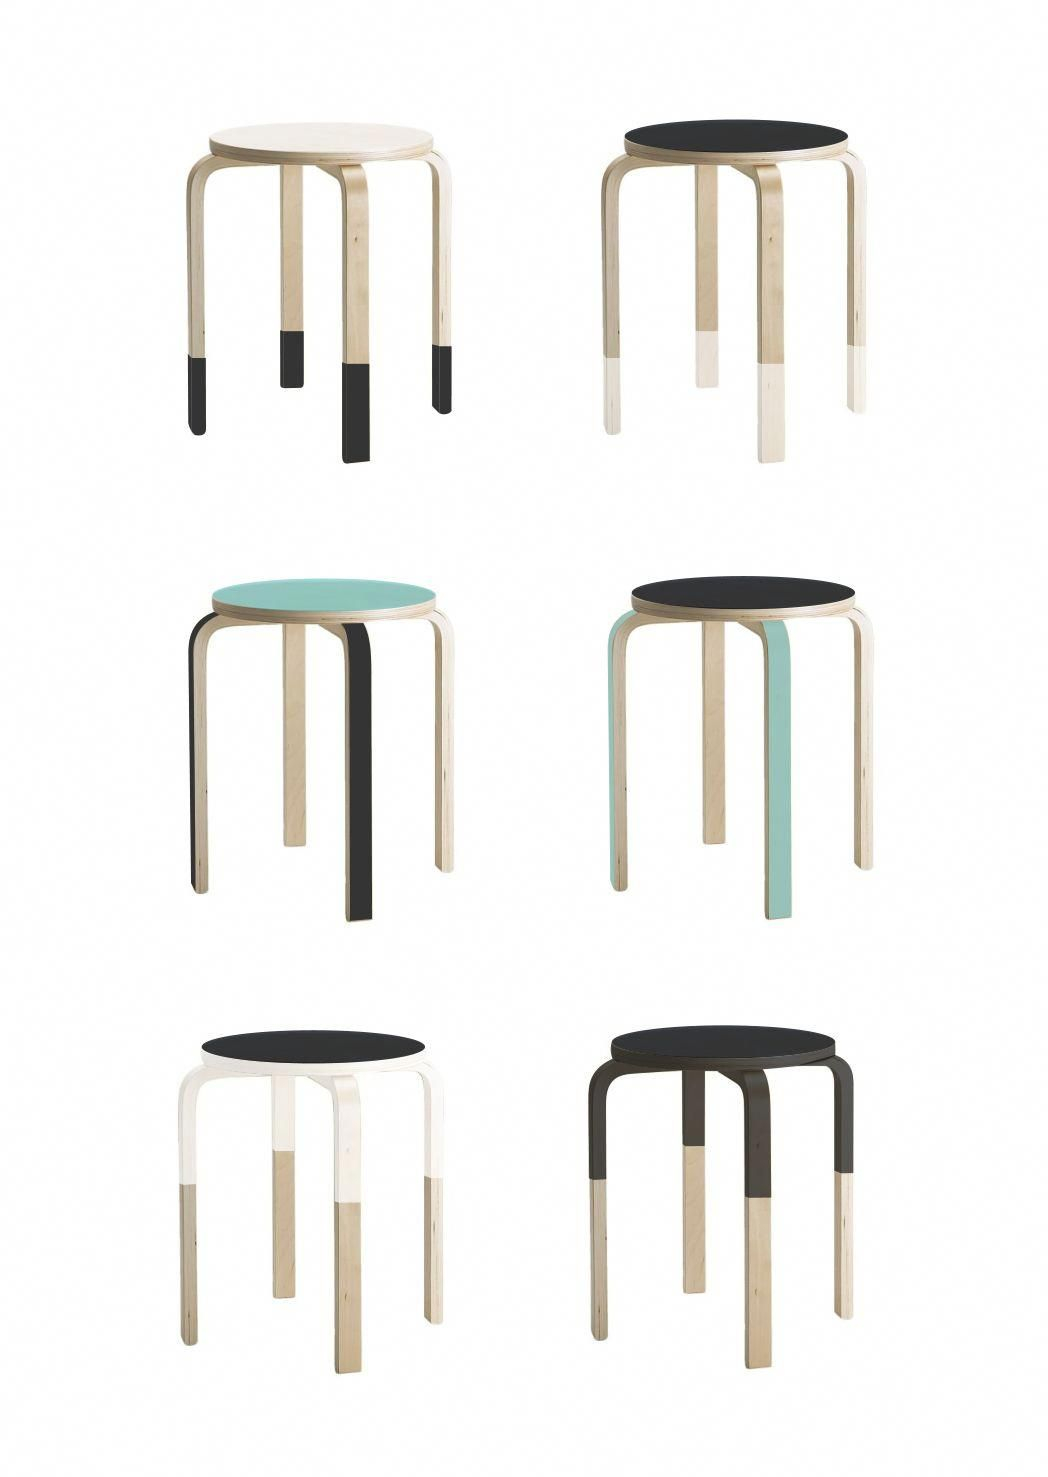 Ikea Tabouret De Bar Imposant Ikea Frosta Paint Hacks Interiordecorationideastoilets